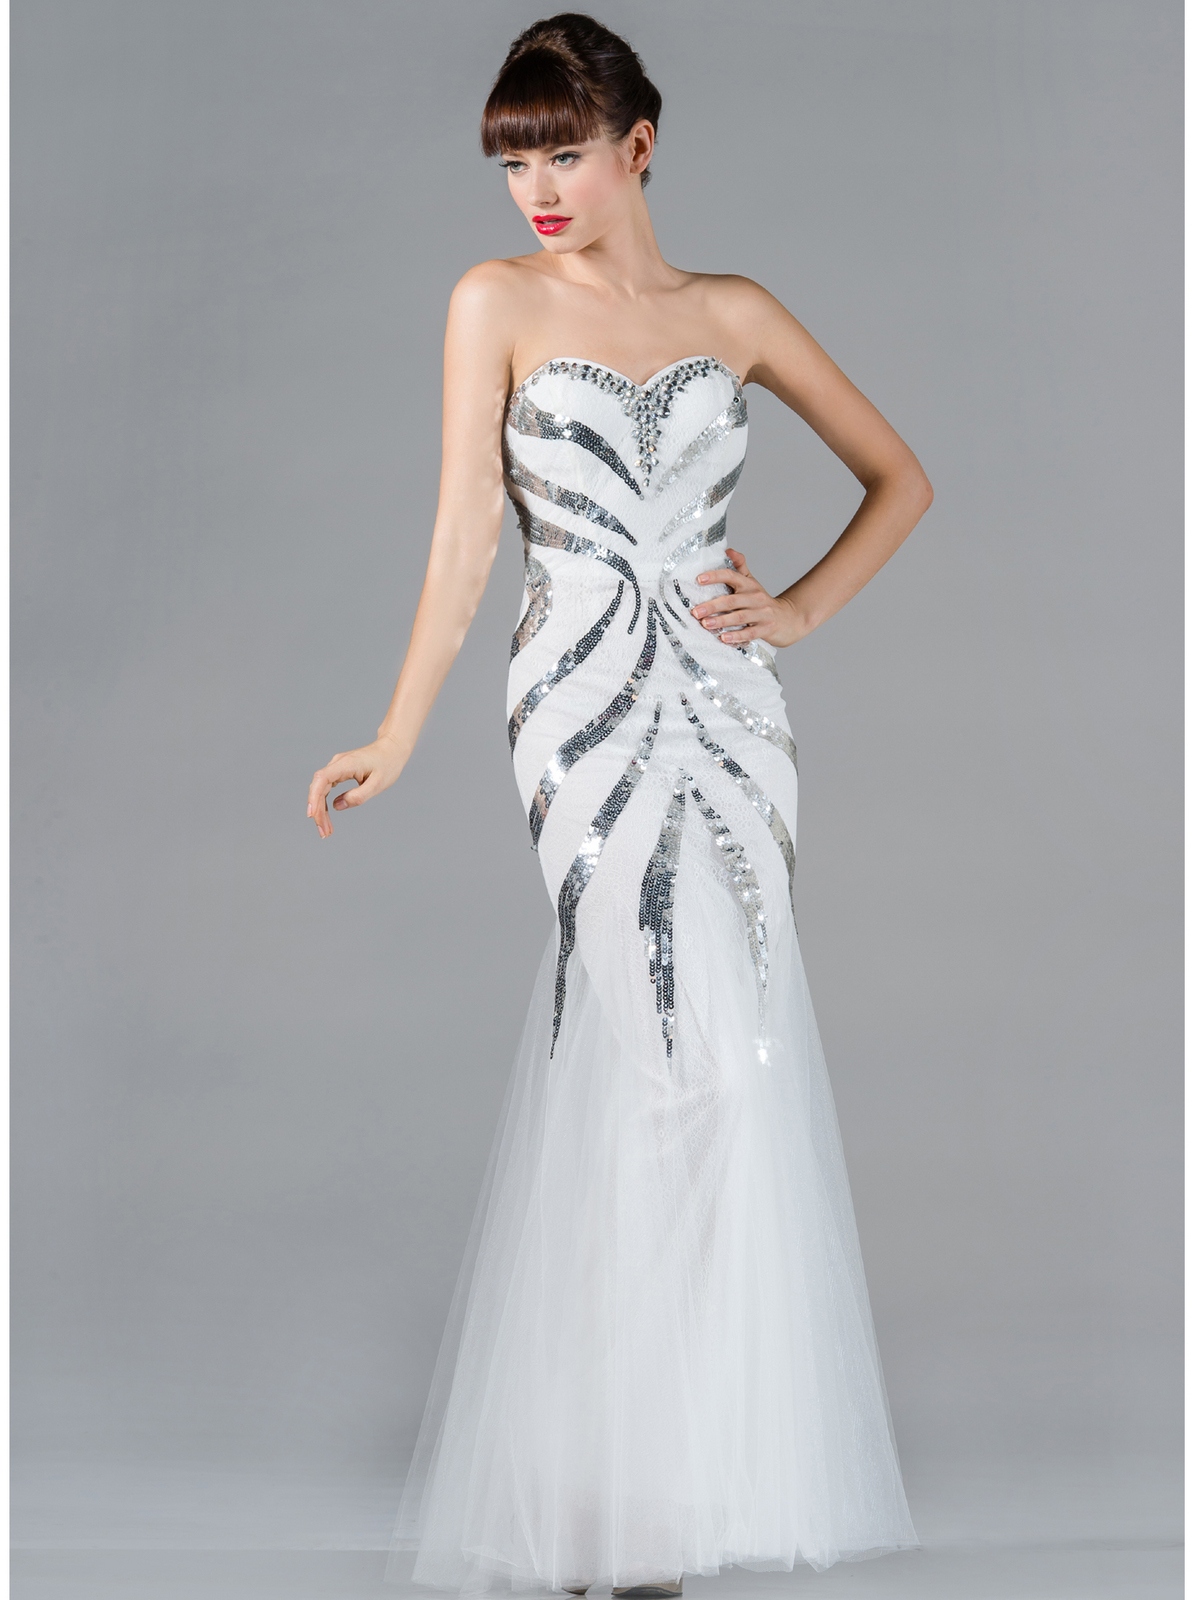 White Mermaid Prom Dress